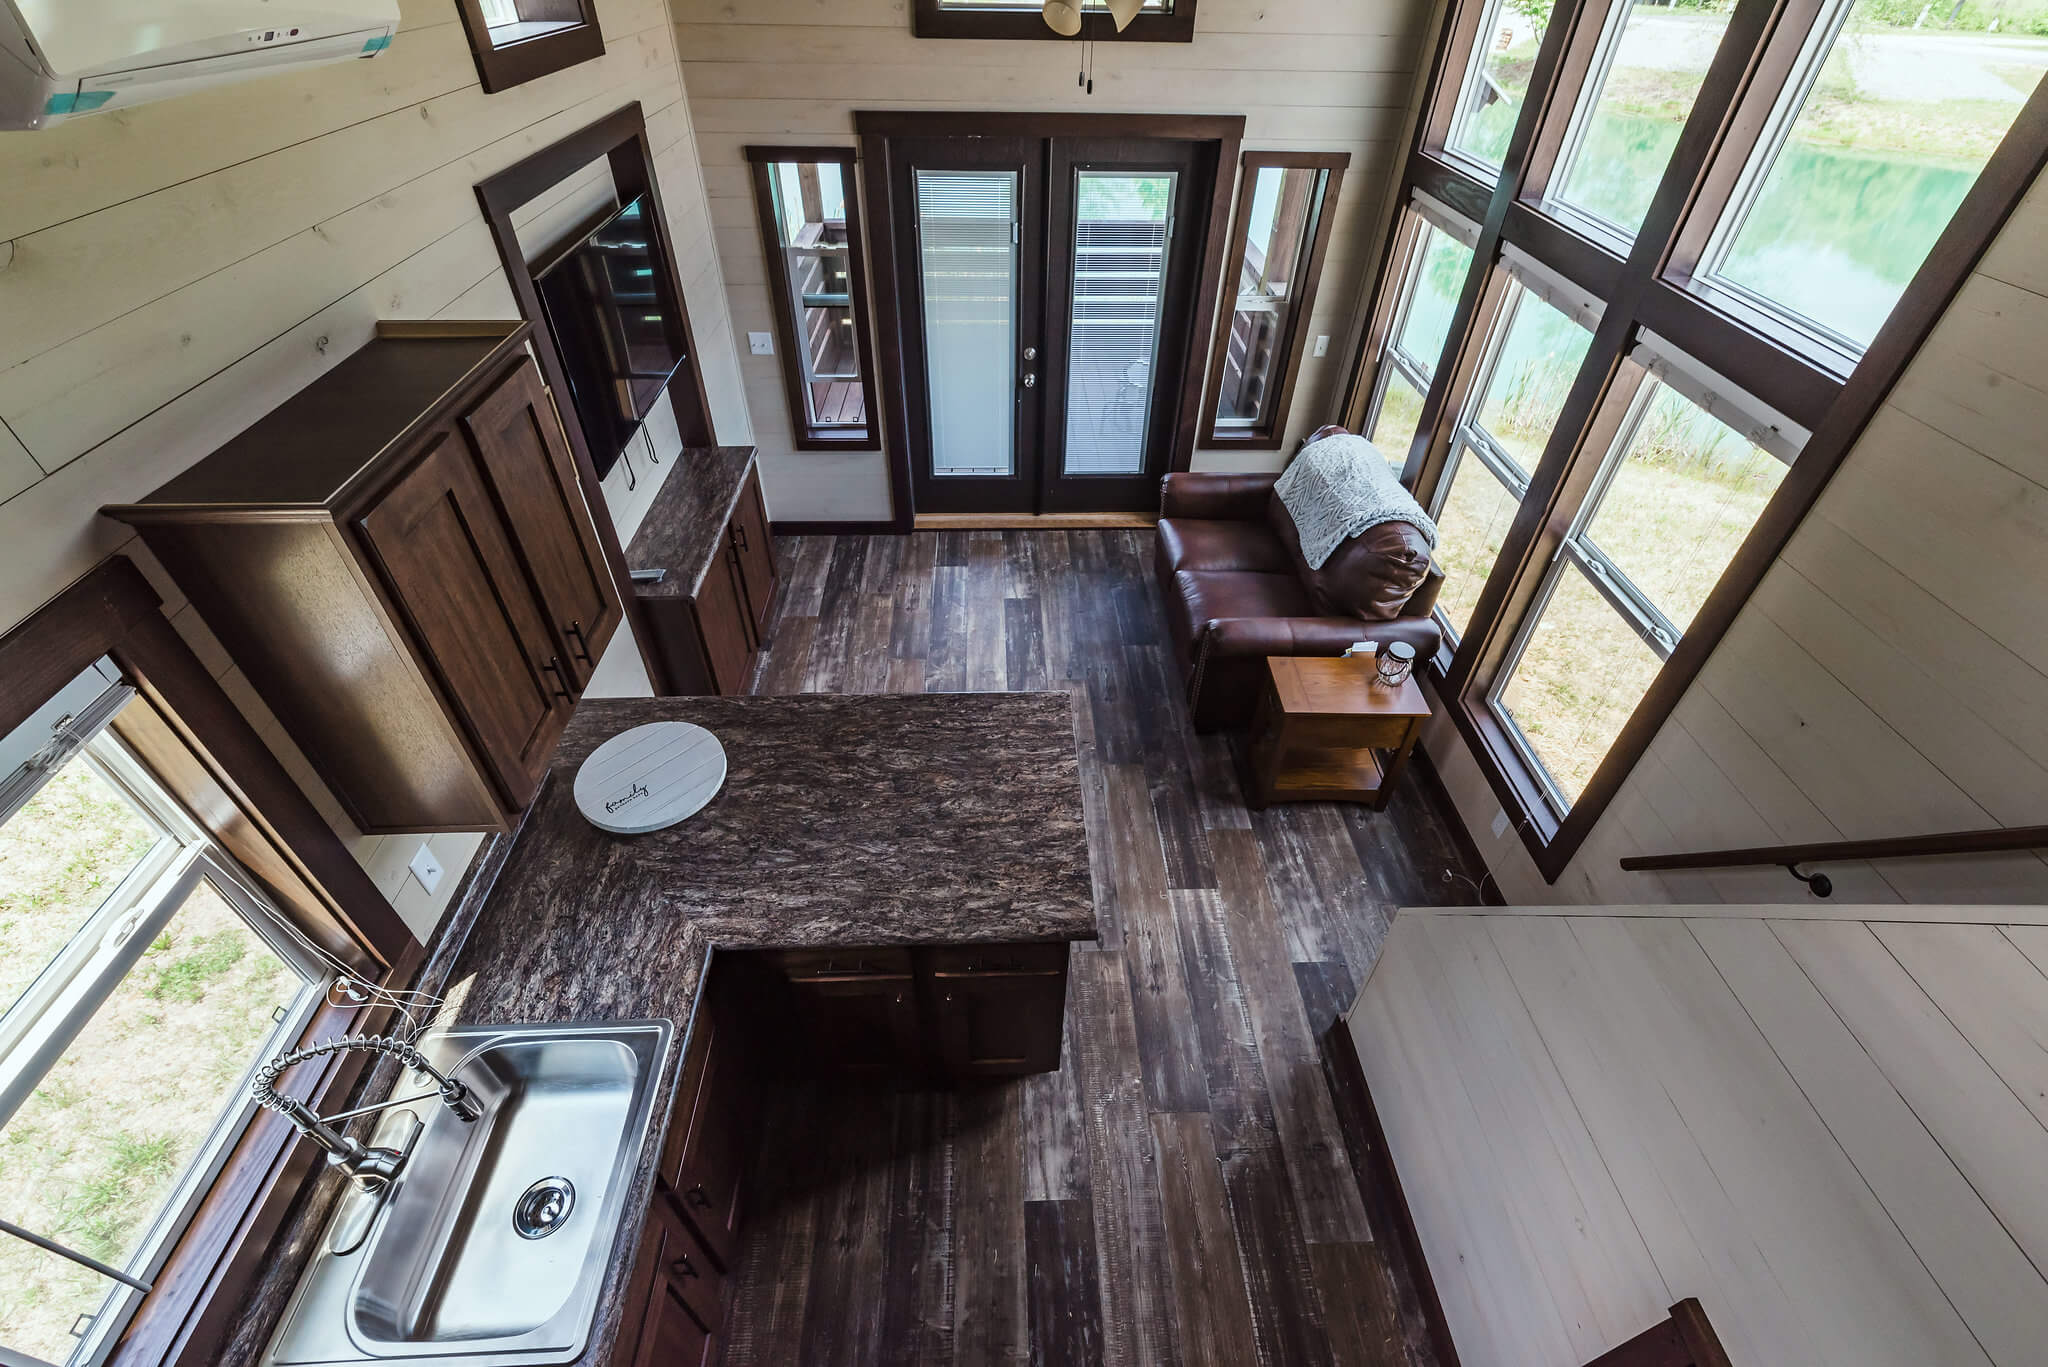 interior view of tiny home at Waterside at Blue Ridge